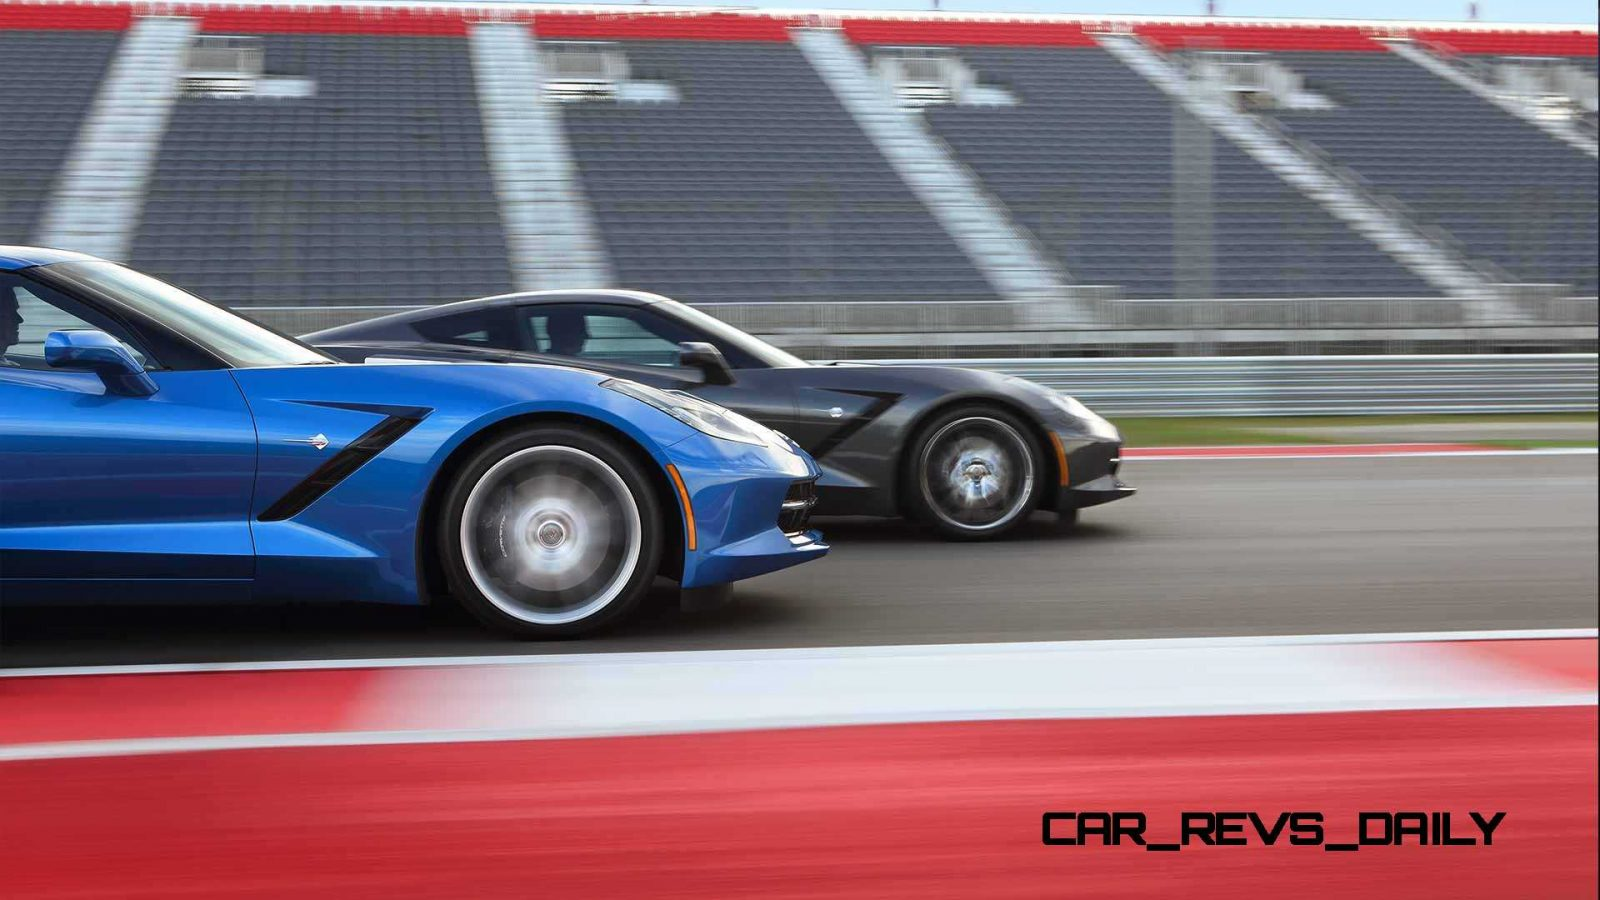 2014 Corvette Stingray Colors Gallery7